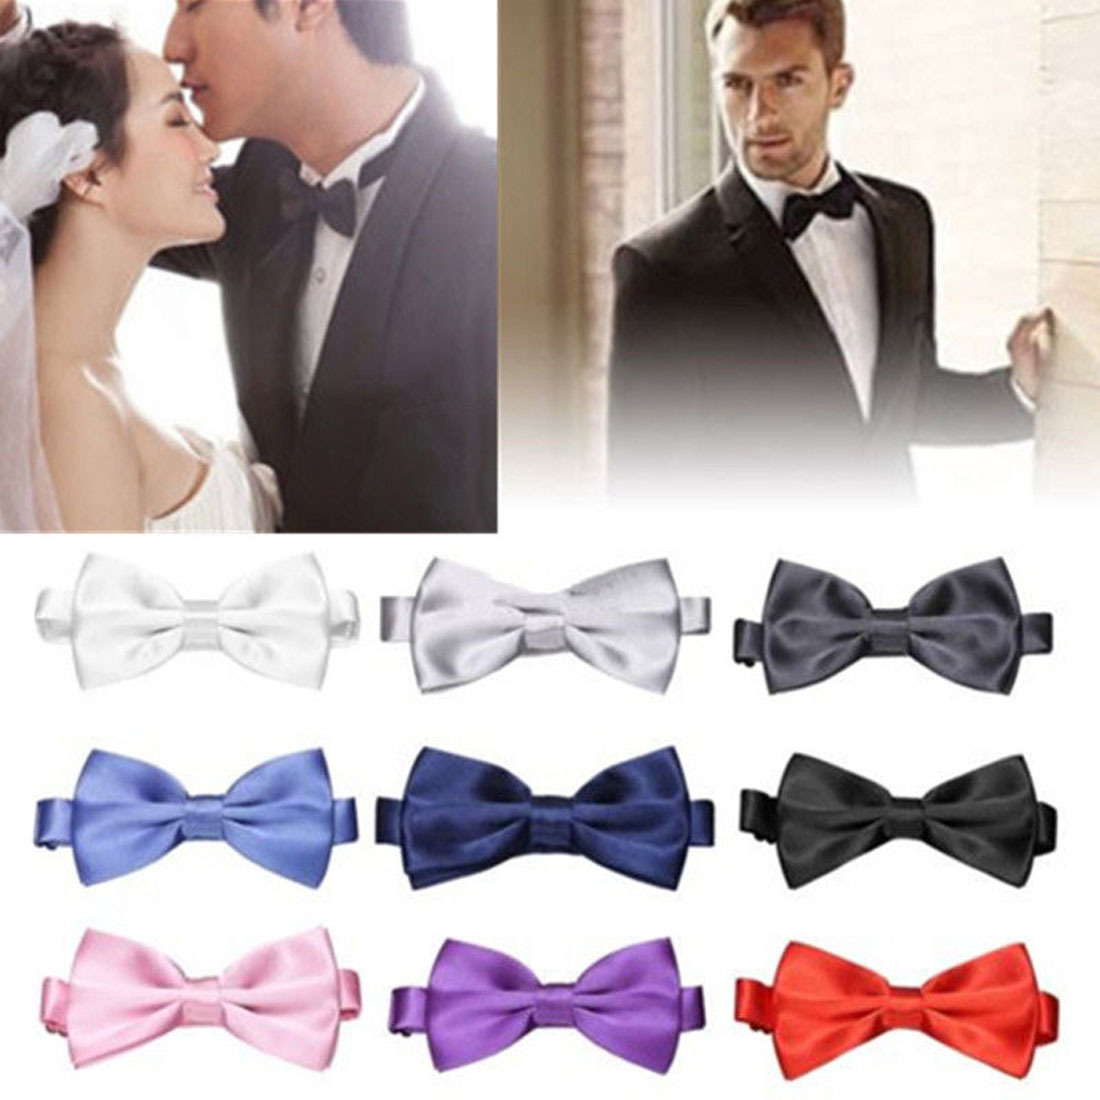 Fashion Men Tuxedo Classic Ties Solid Color Butterfly Bow Tie Wedding Party Bowtie Bow Simple Bridegroom Tie High Quality